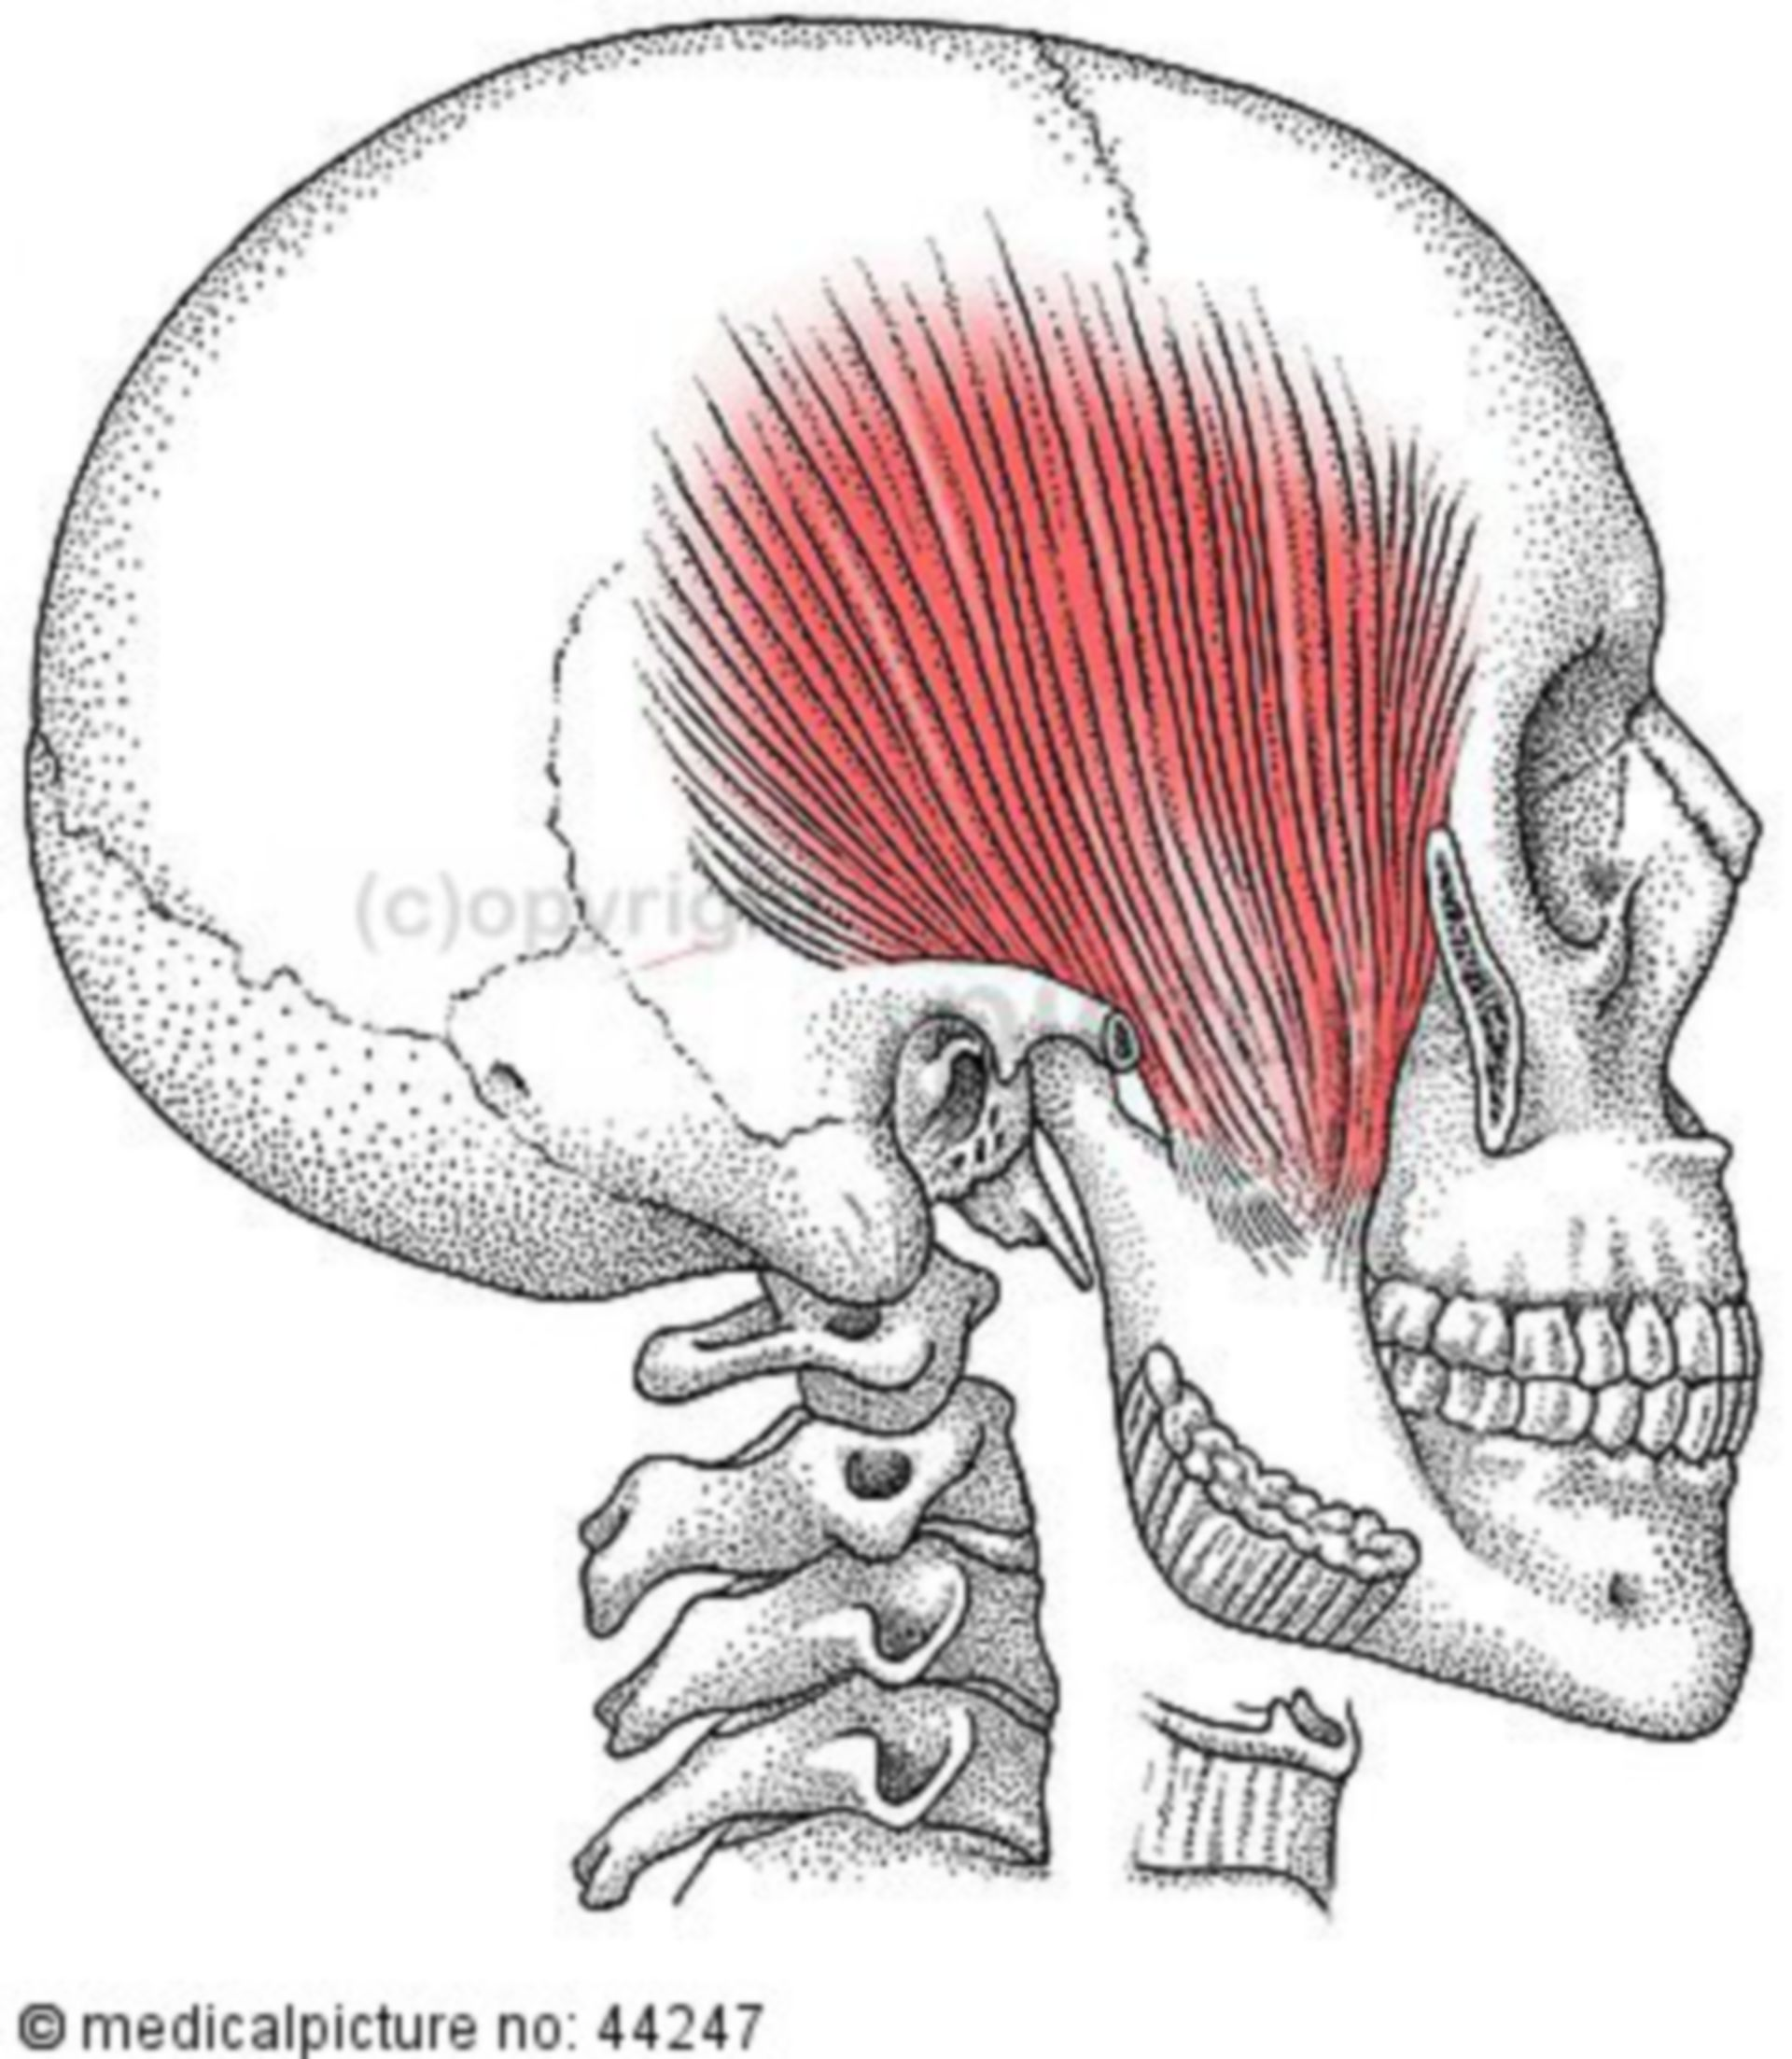 Cranium with Temporal Muscle